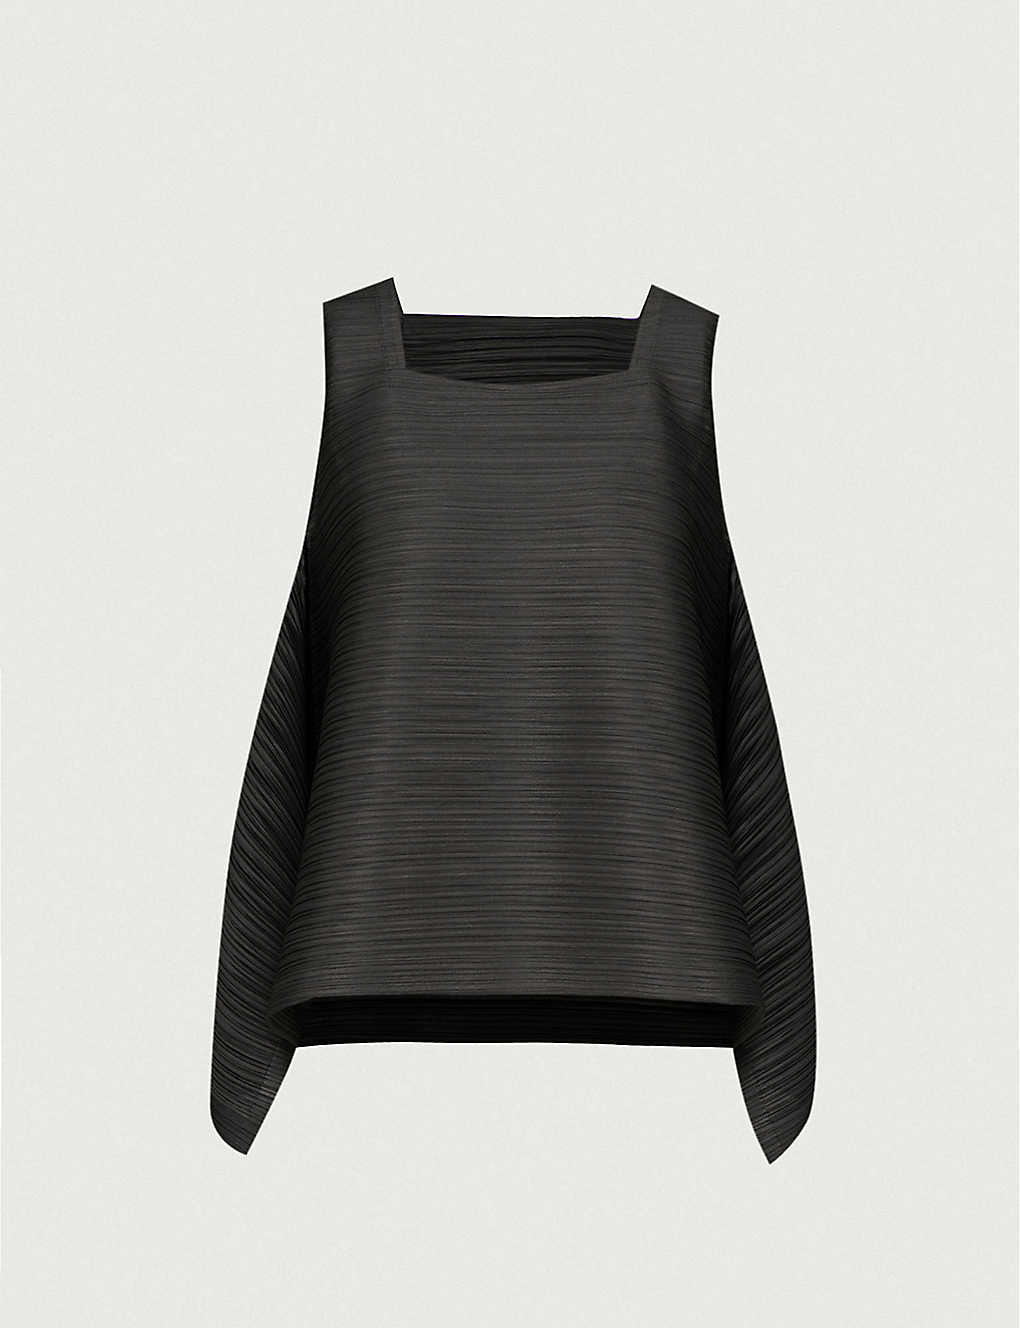 d0305ccaedc02 PLEATS PLEASE ISSEY MIYAKE - Asymmetric pleated top